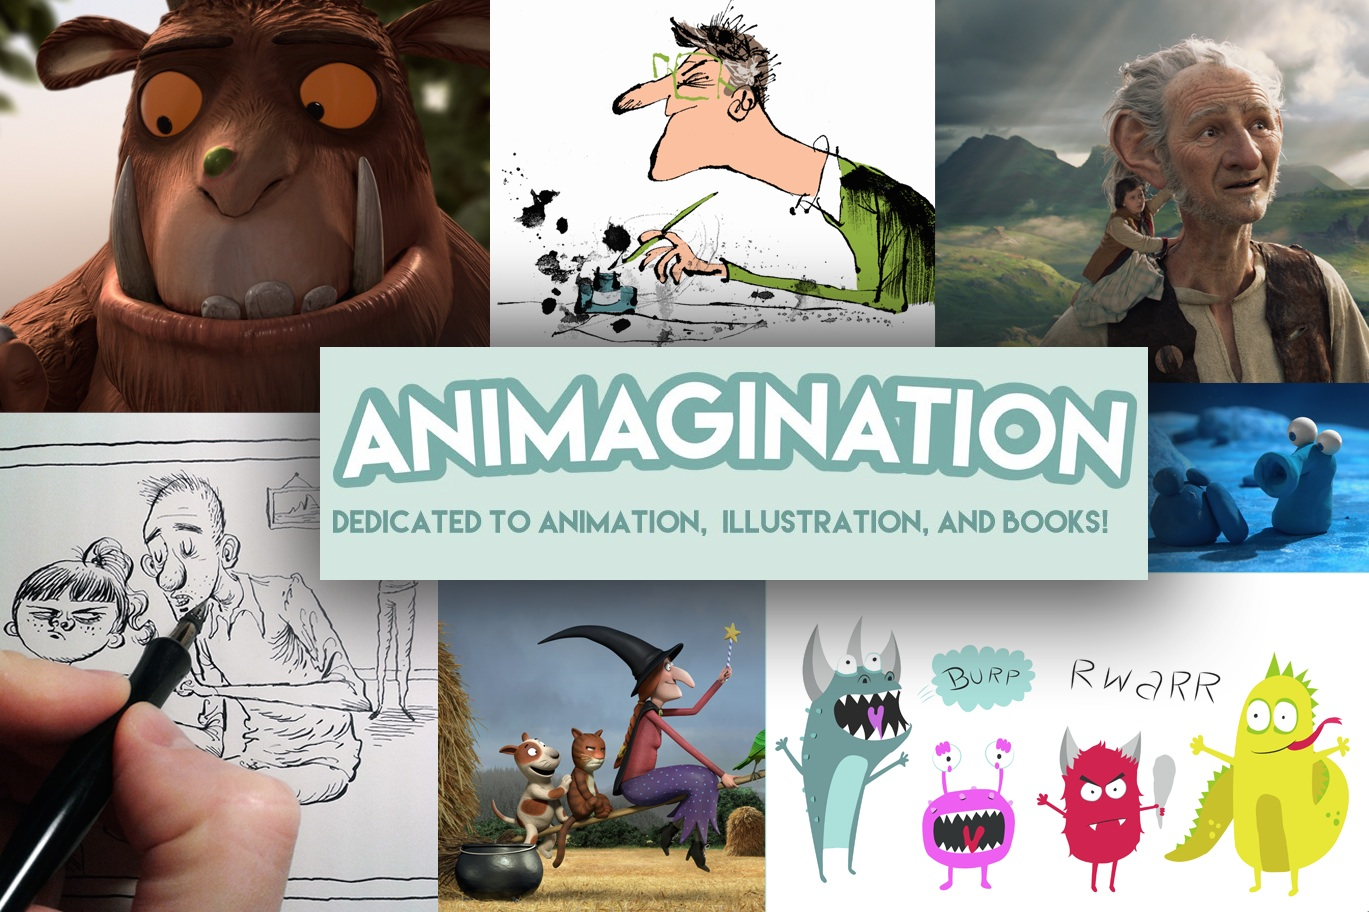 animagination